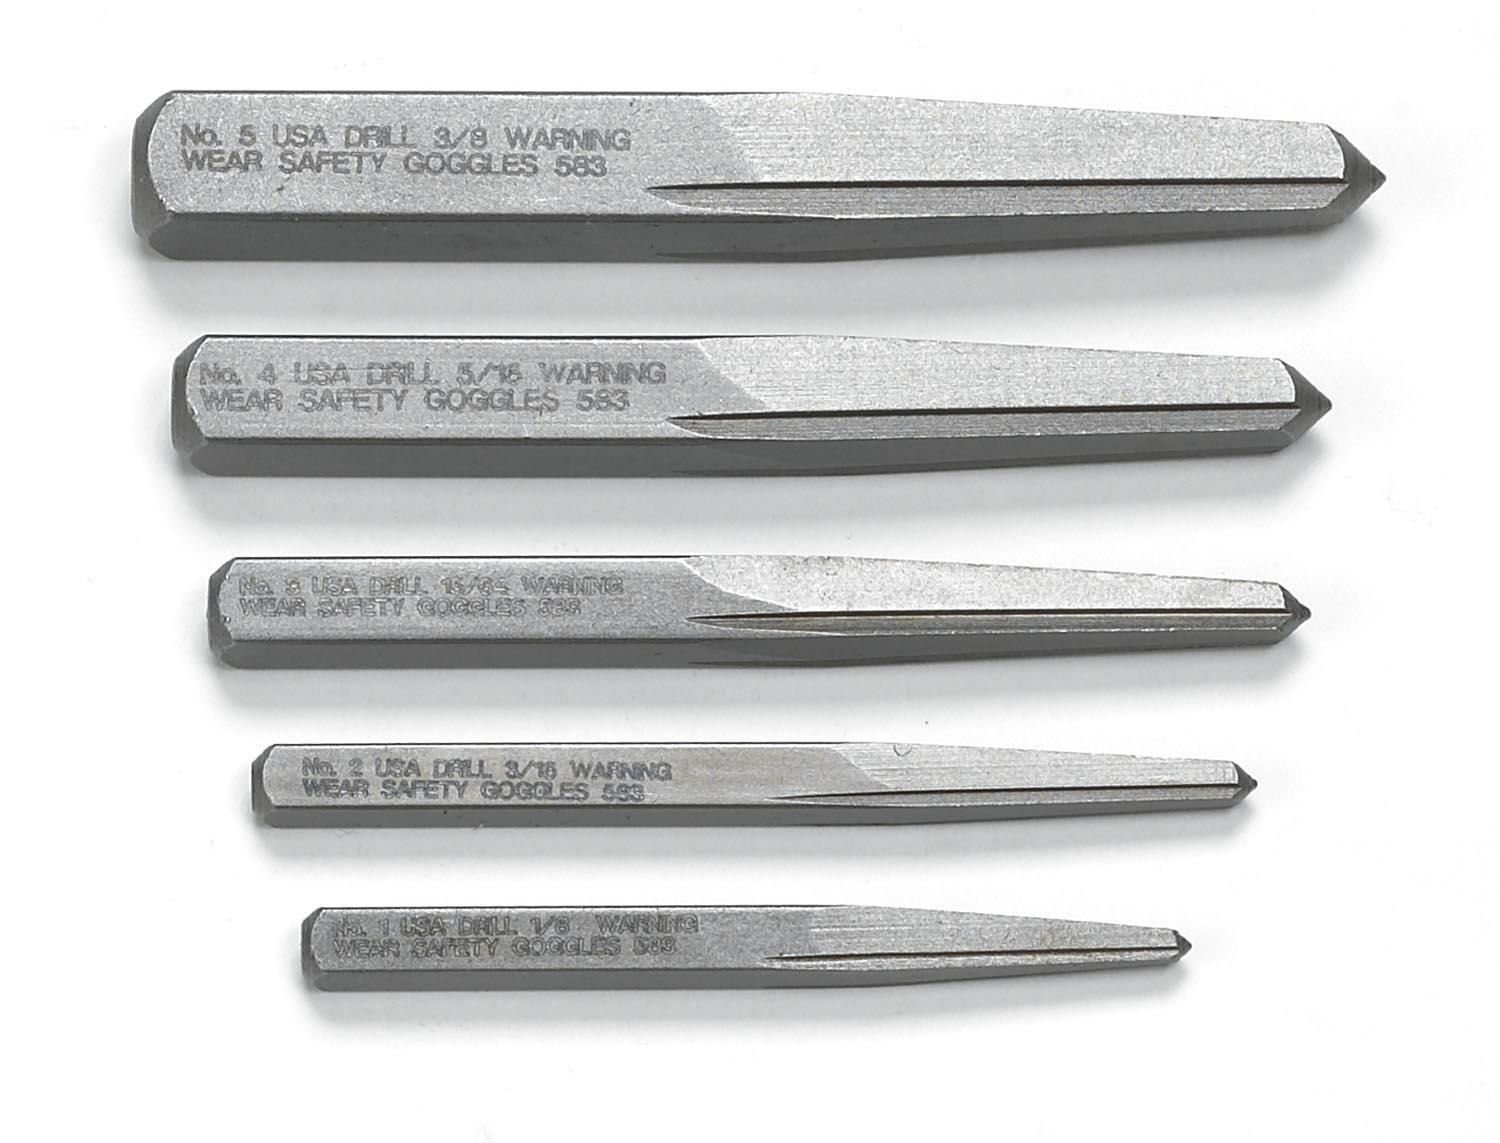 GEARWRENCH 5 Pc. Straight Fluted Screw Extractor Set - 720DD by GearWrench